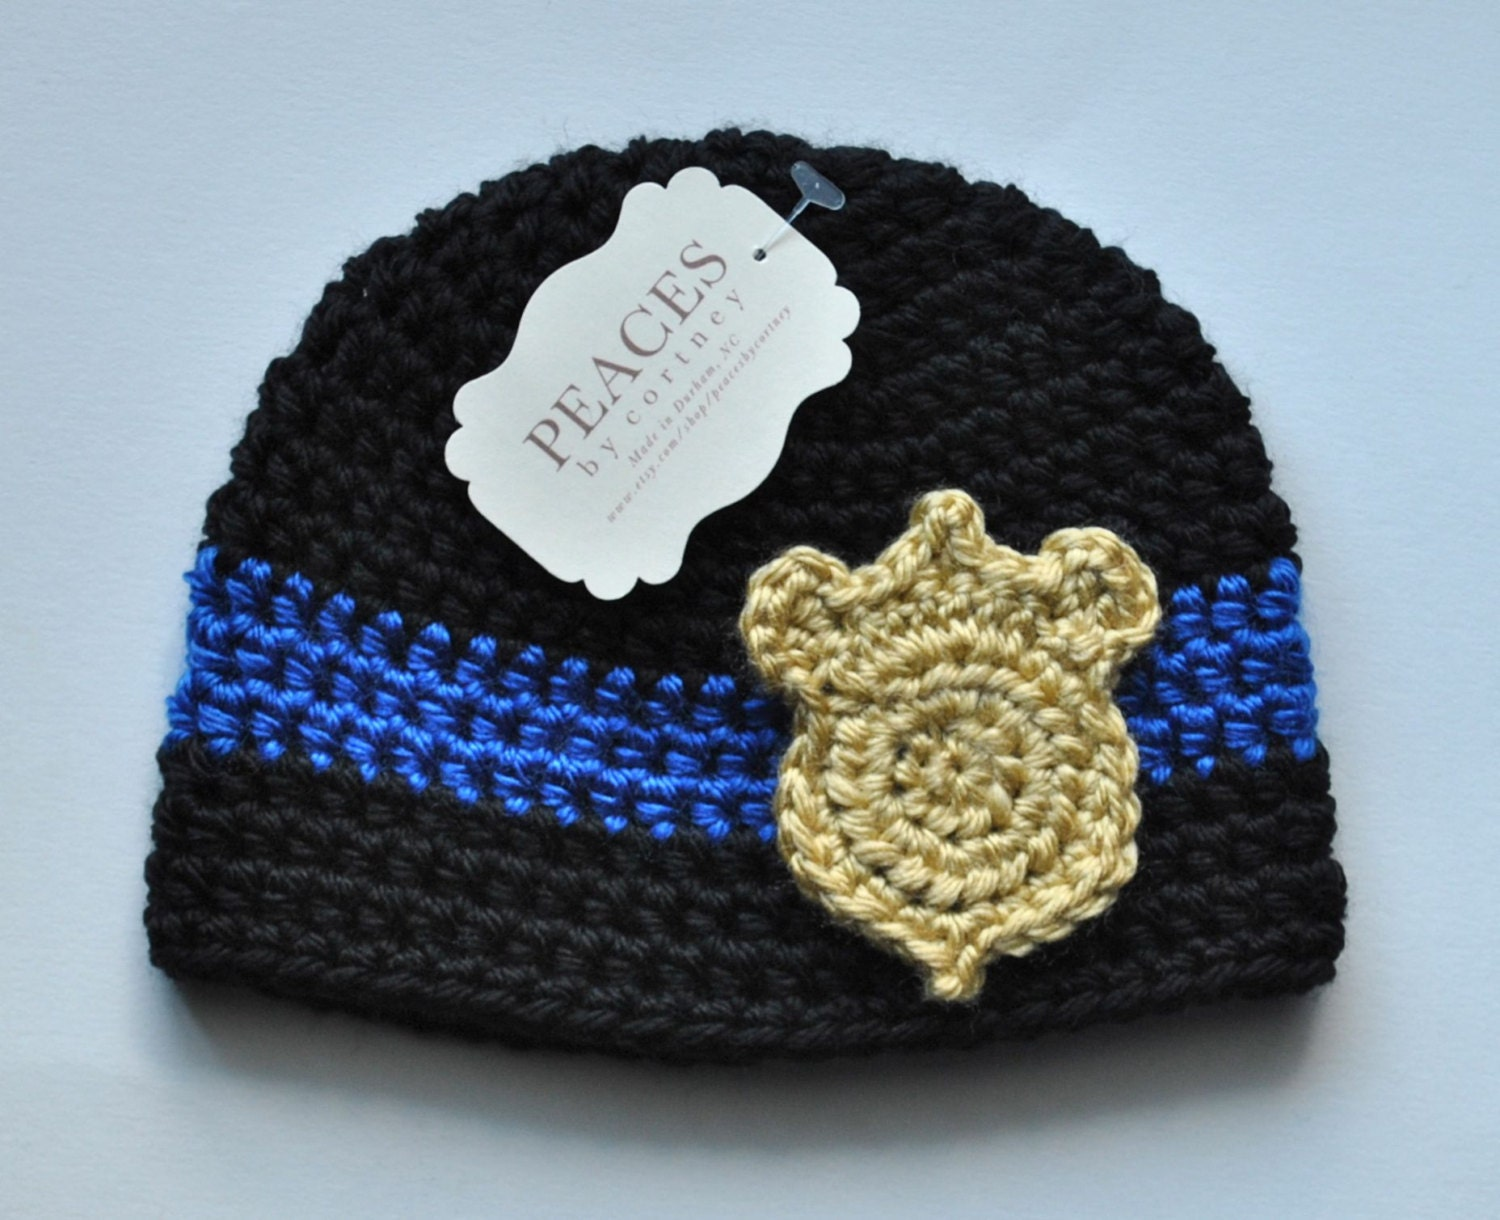 Police Baby Hat - Black with Gold Badge (skull cap beanie) 53089a65d04